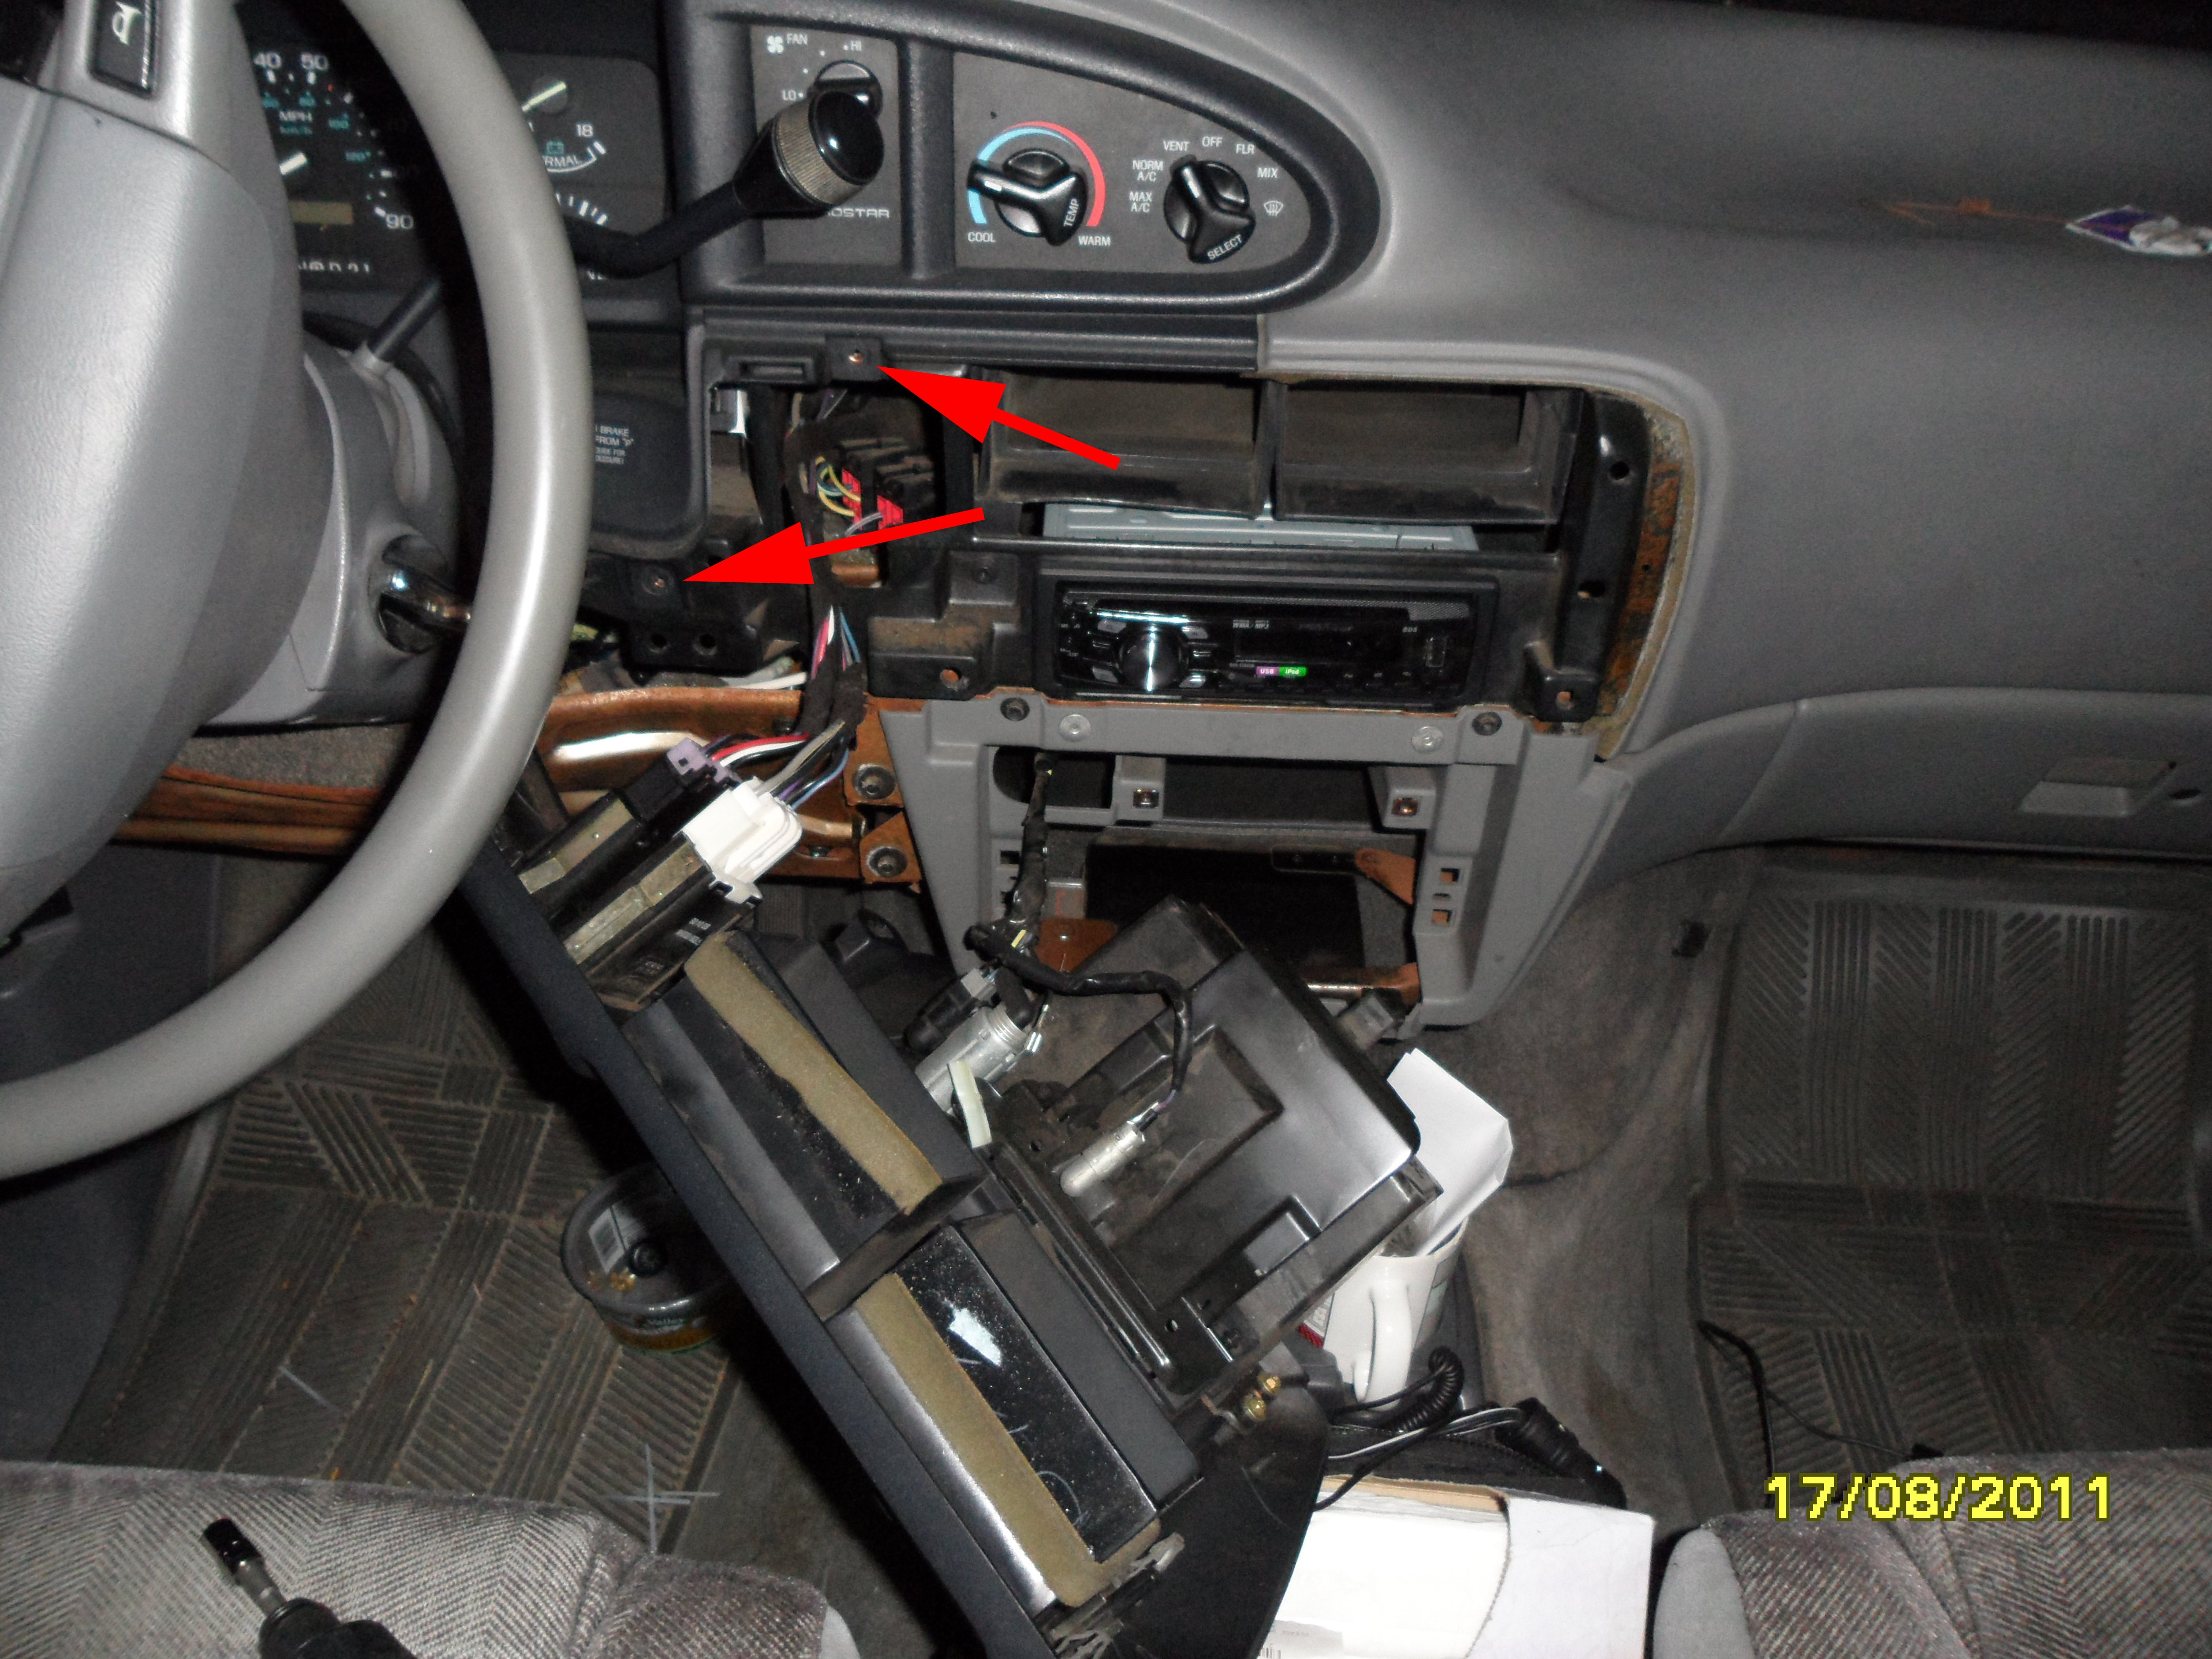 Headlight Switch Connector Replacement 92 On Ford Truck Medium Duty Wiring Diagrams Leave All The Cigar Lighter Rear Wiper Defrost Connected You Dont Need To Move Radio Surround Too Far